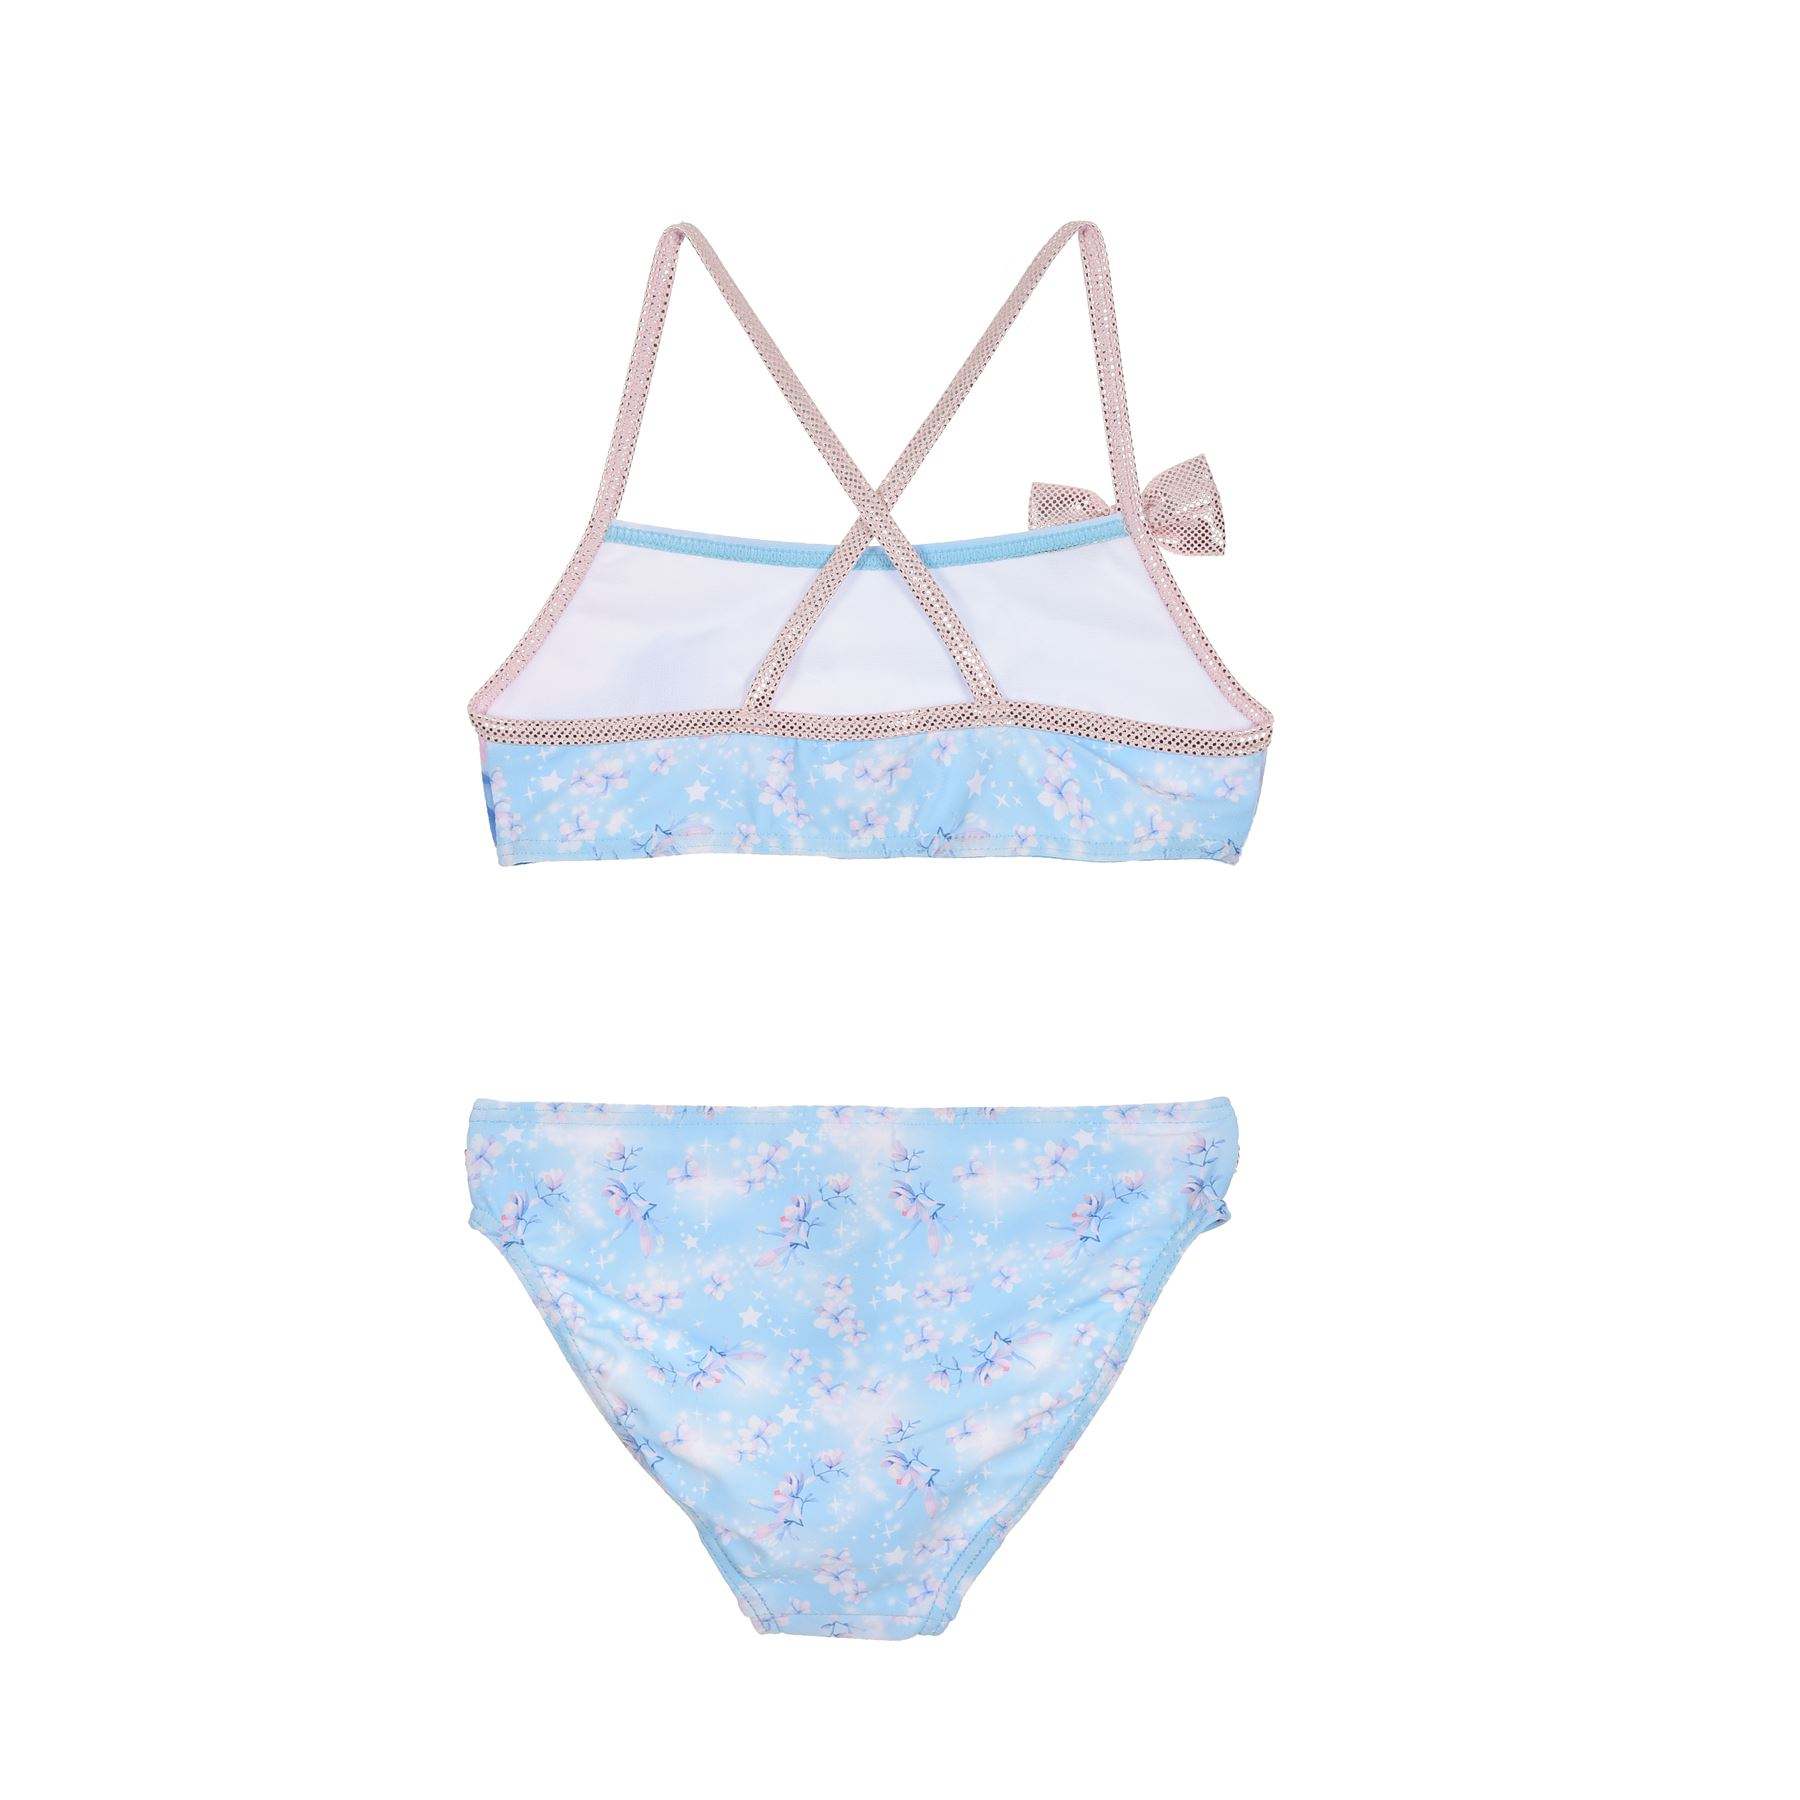 Girls-Bikini-Set-Childrens-Kids-Swimming-Costume-Age-3-8-Years thumbnail 16